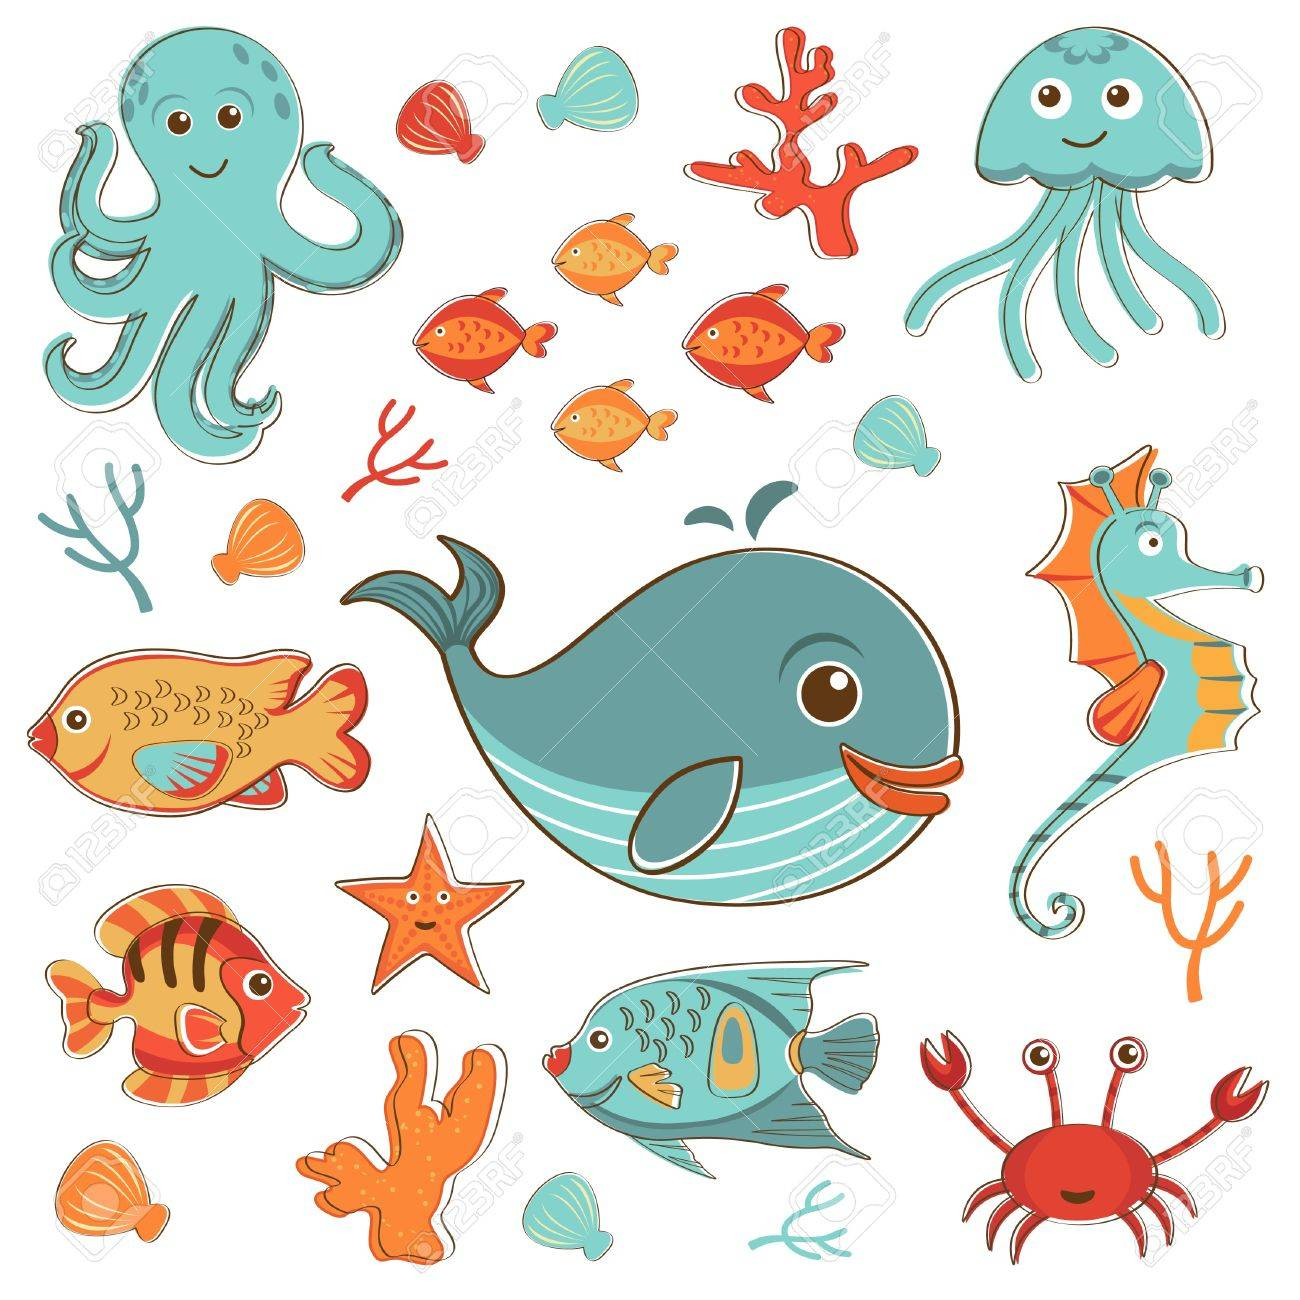 https://previews.123rf.com/images/olillia/olillia1307/olillia130700017/21081201-Sea-creatures-doodles-set-format-Stock-Photo.jpg